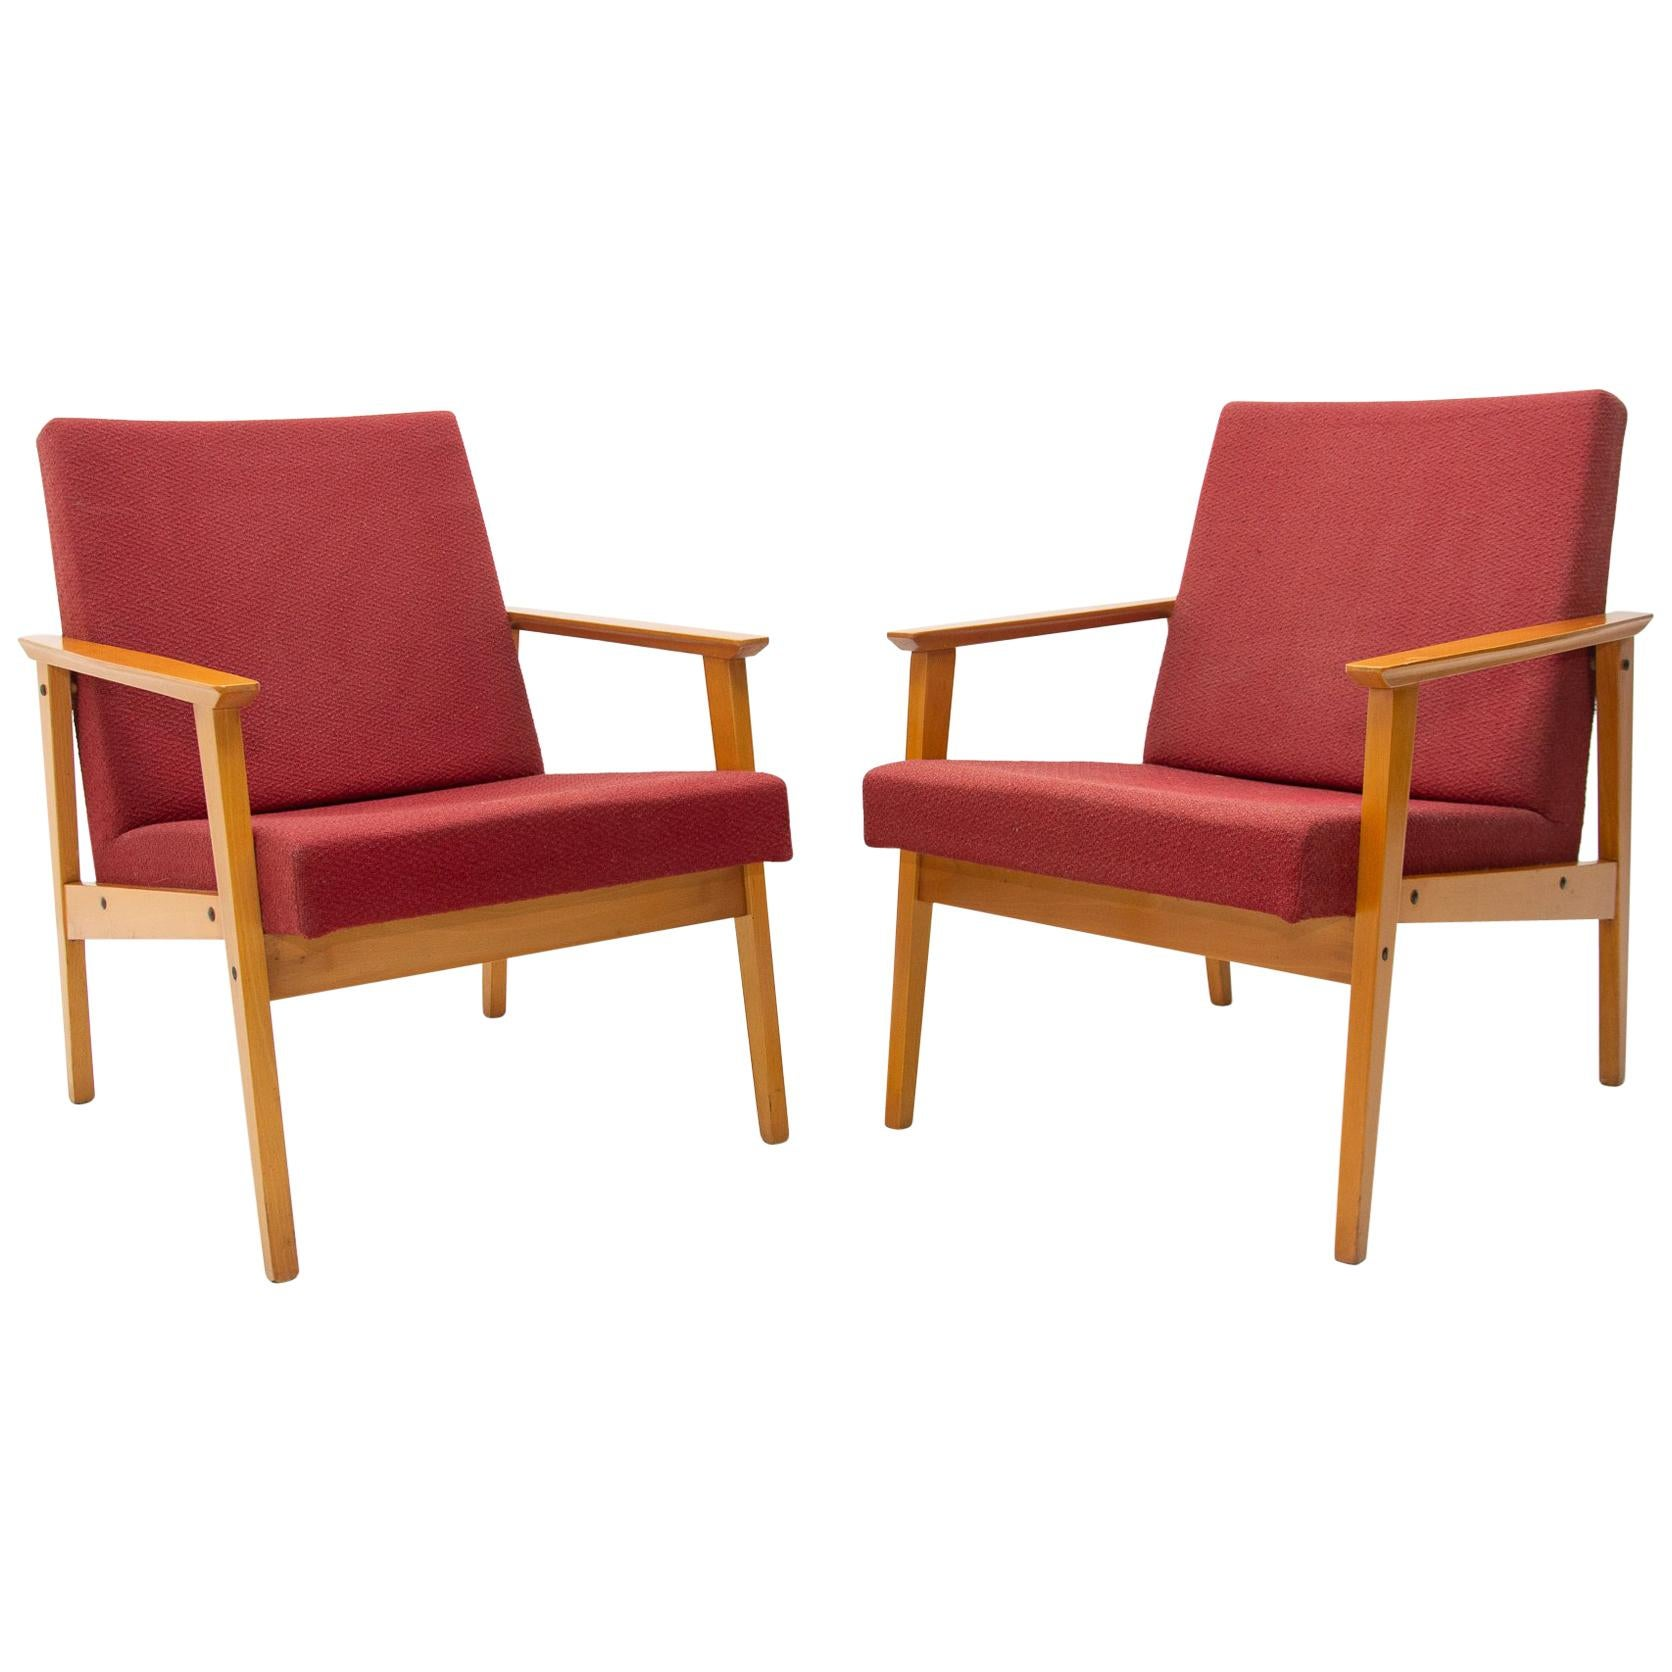 Pair of Midcentury Danish style Armchairs for TON, 1960s